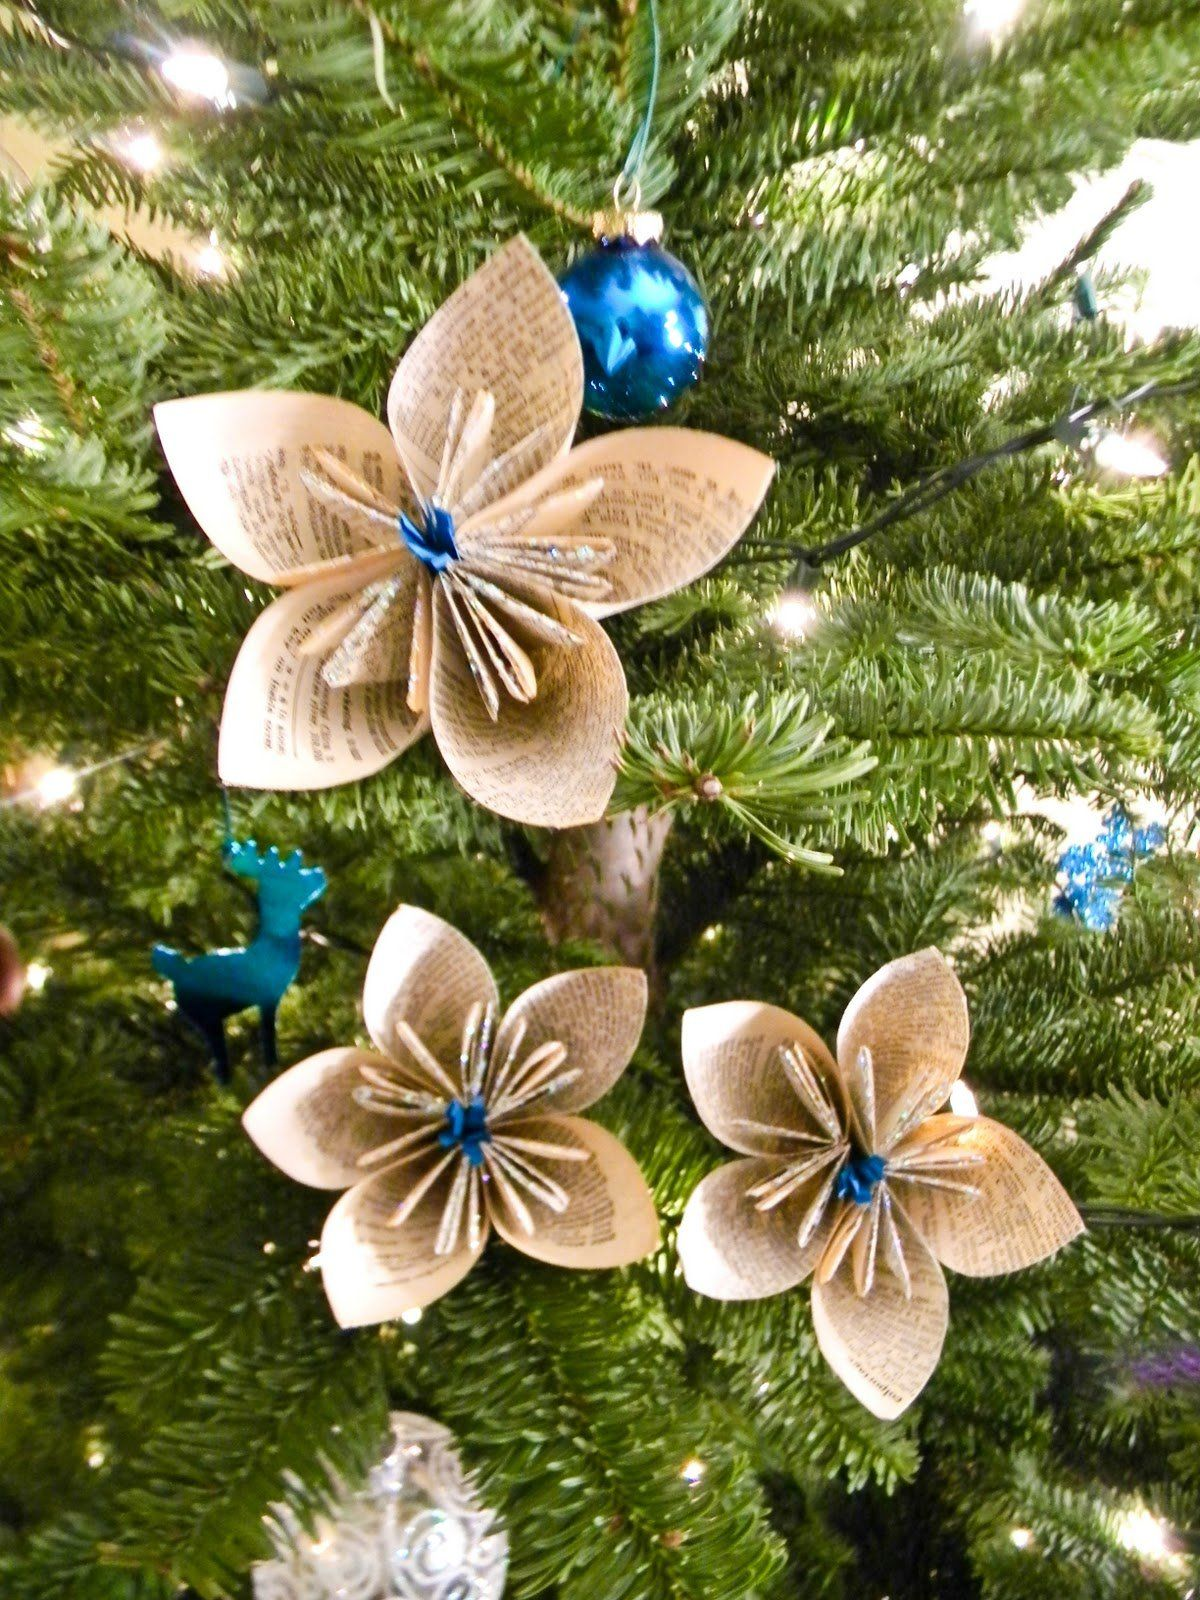 Handmade christmas tree ornaments ideas - Diy Rustic Christmas Tree Decorations Google Search